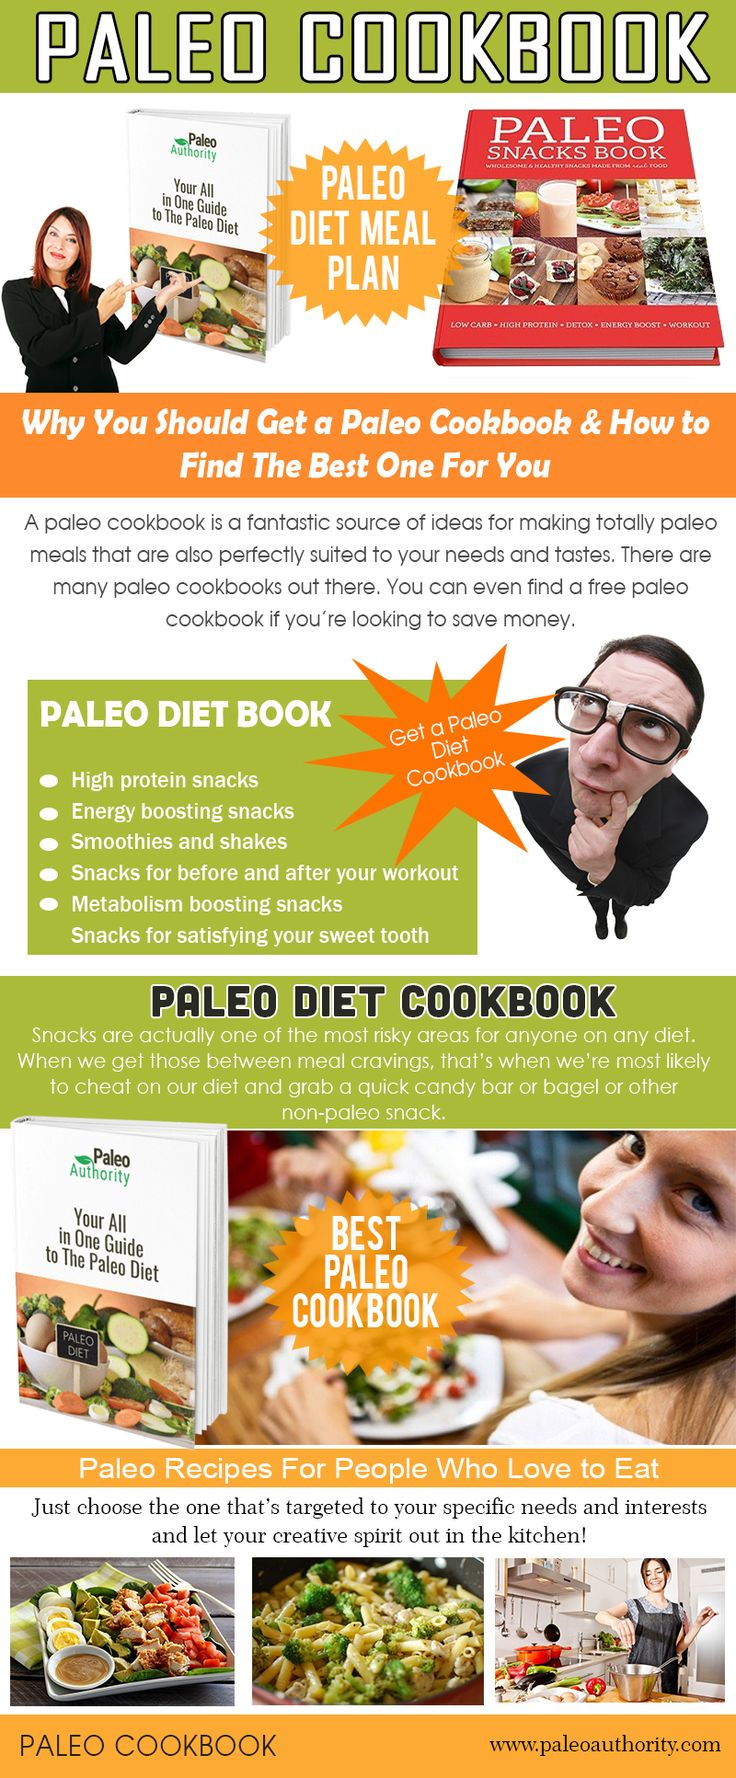 Browse this site http://paleoauthority.com/get-a-paleo-cookbook/ for more information on Best Paleo Cookbook. Now that you have your Best Paleo Cookbook, it becomes easier to just choose a good recipe each day.